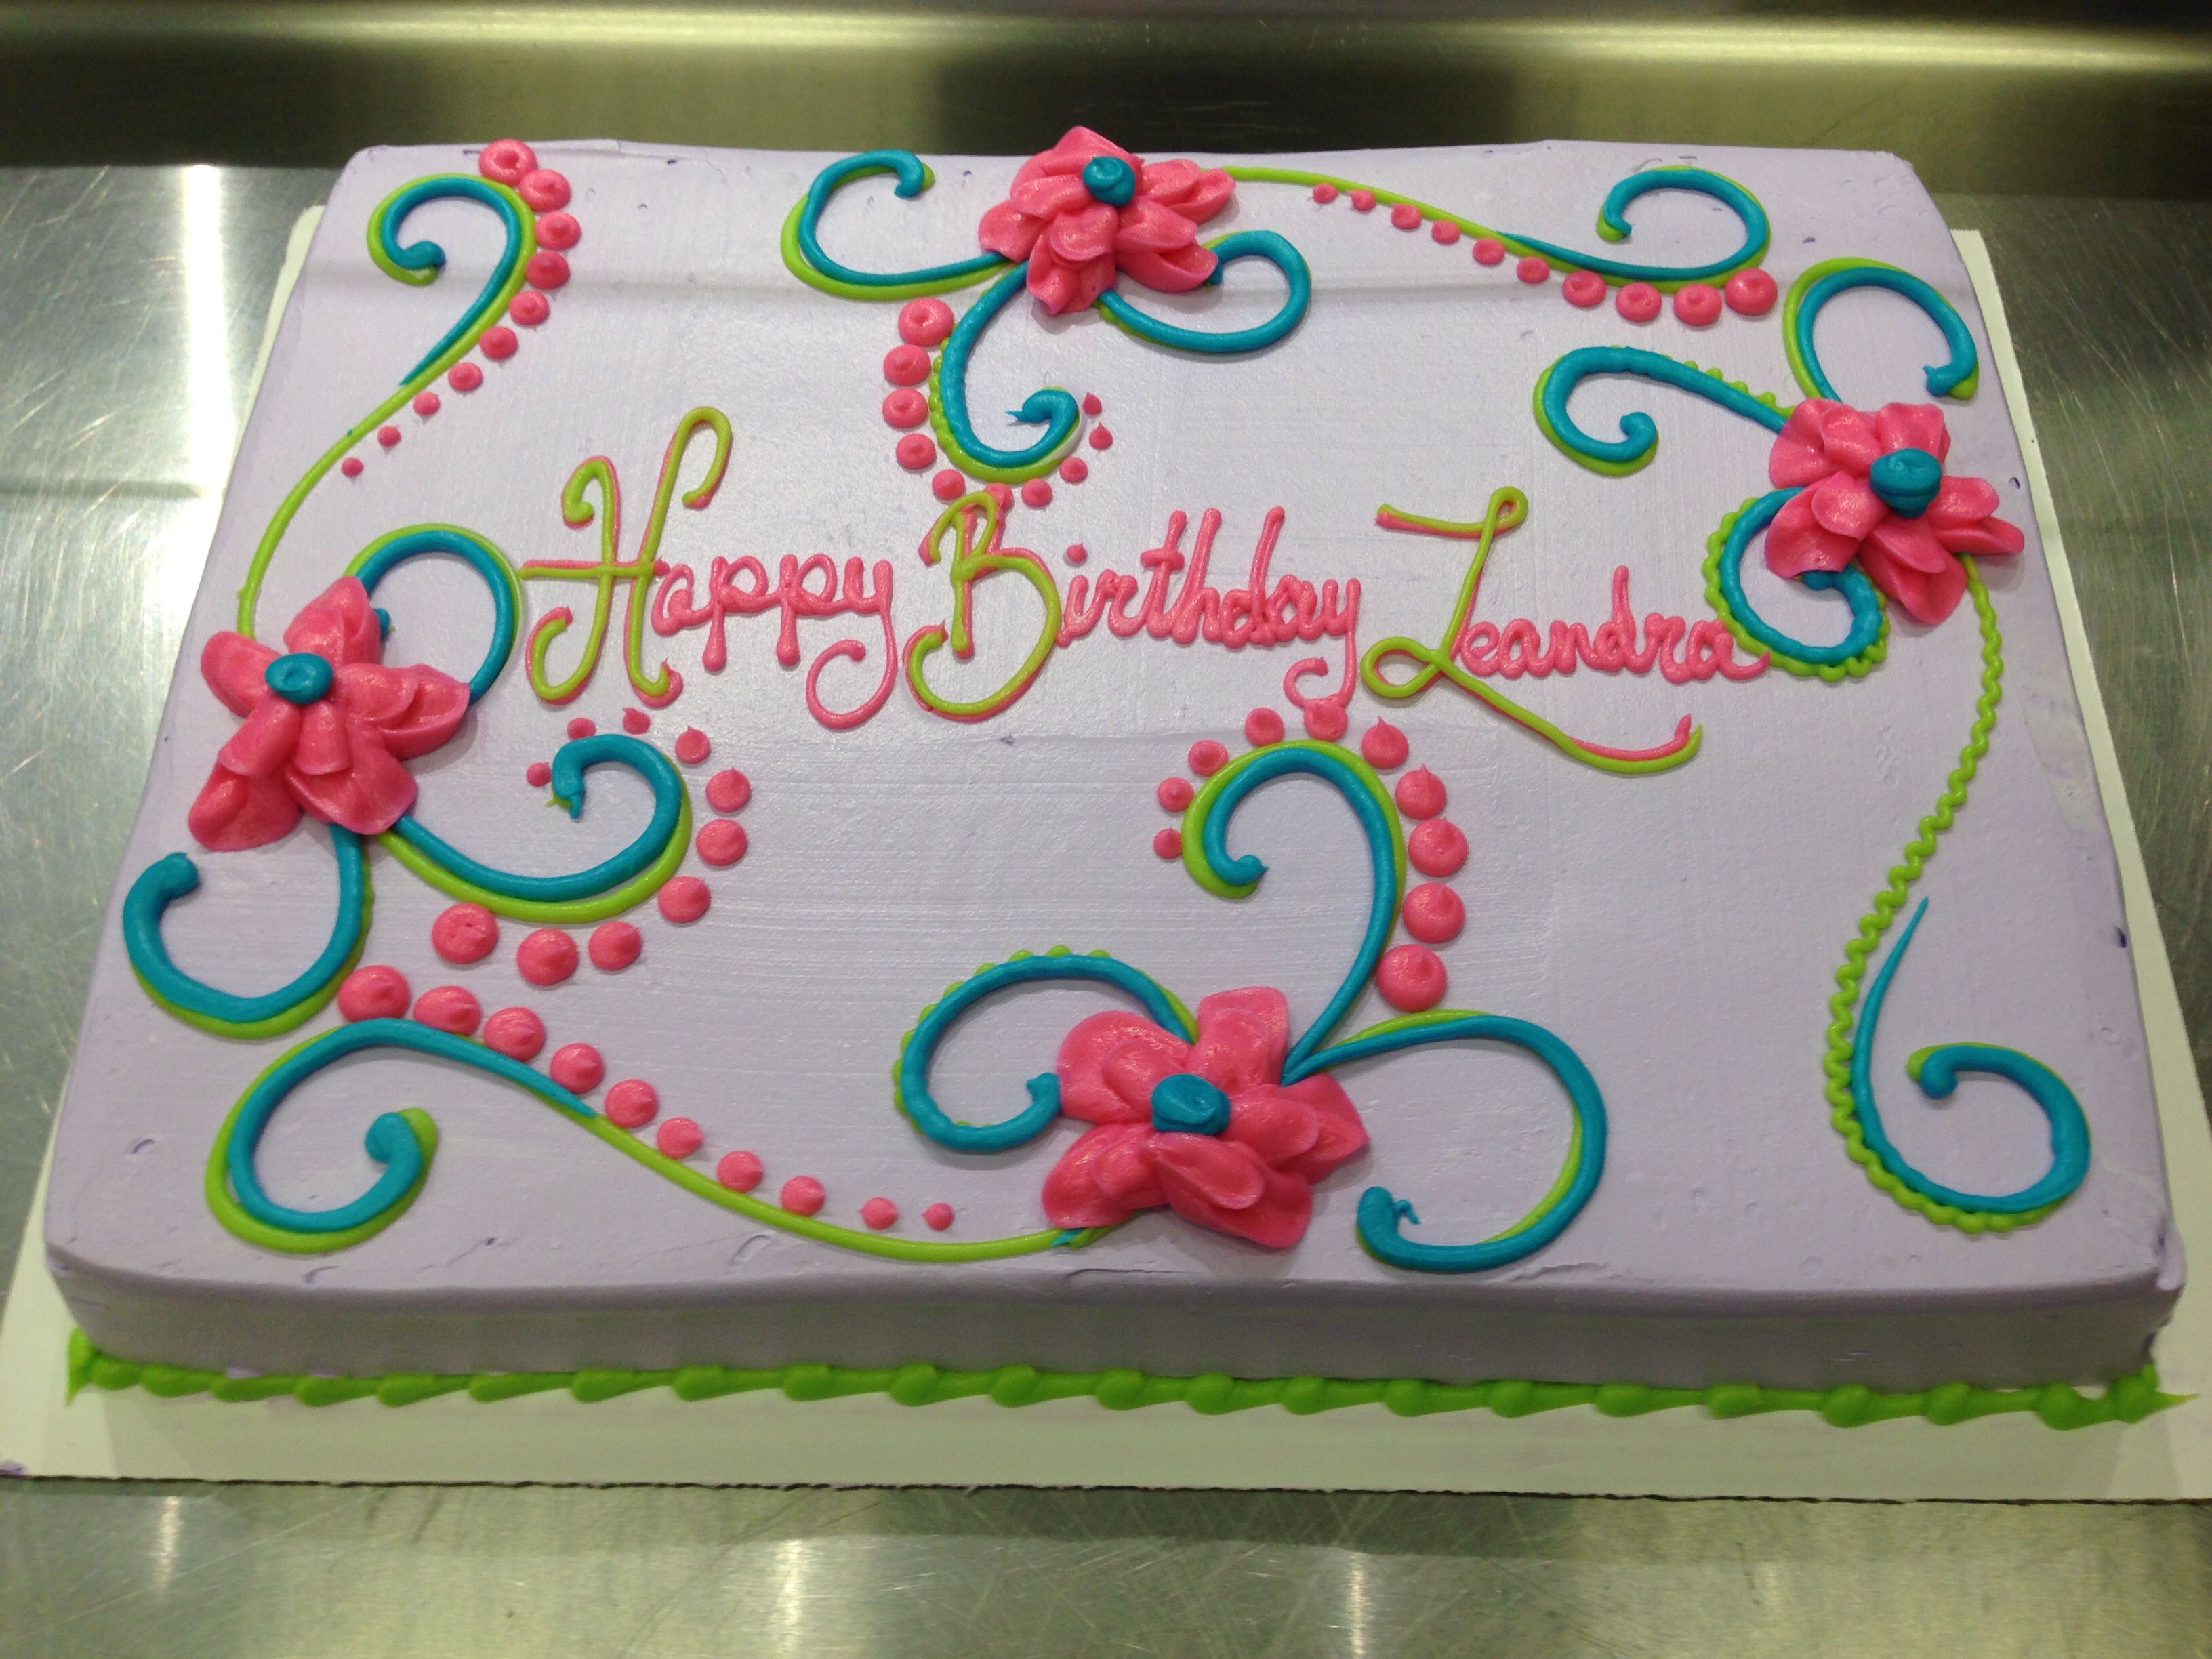 Scrolls and flowers girly birthday cake also cakes  made pinterest rh